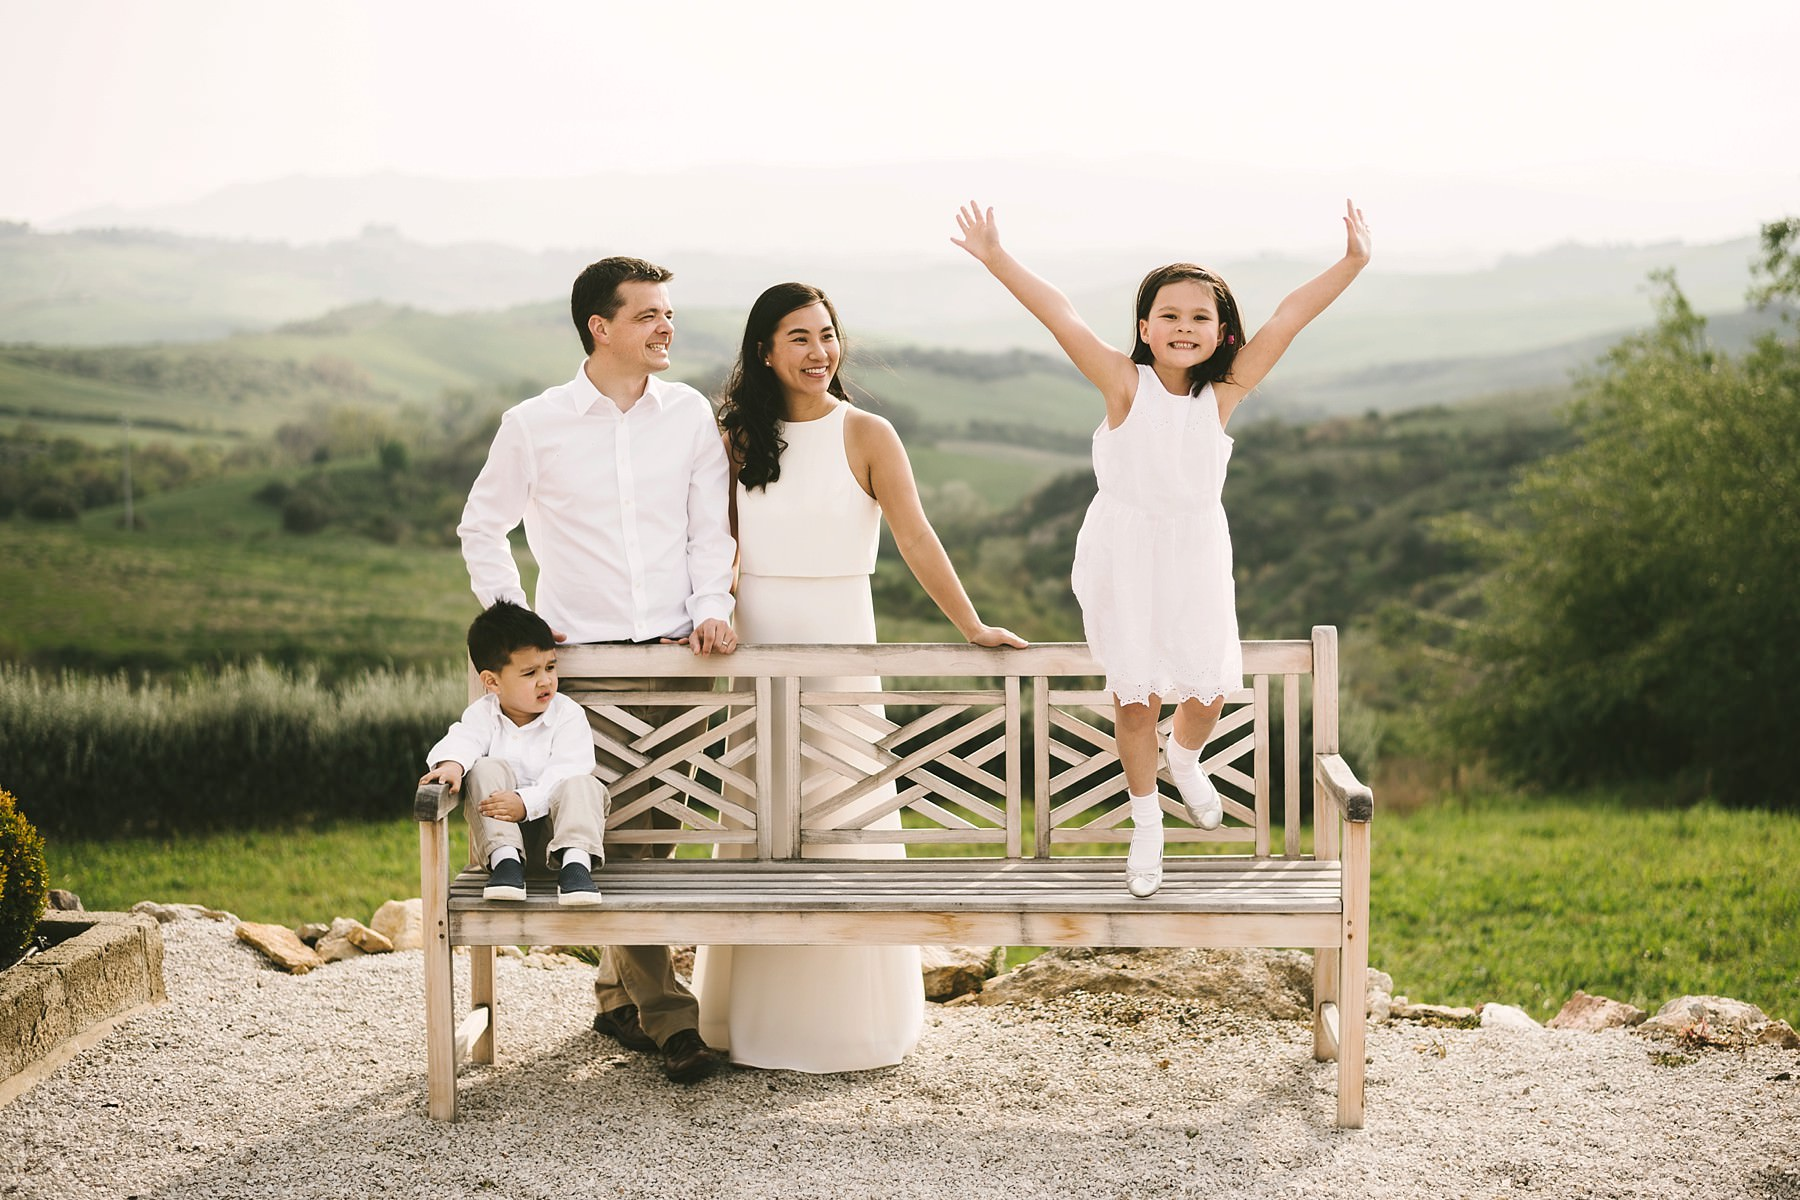 Enjoy a new experience with your family during your vacation in Tuscany to build your memories that last forever